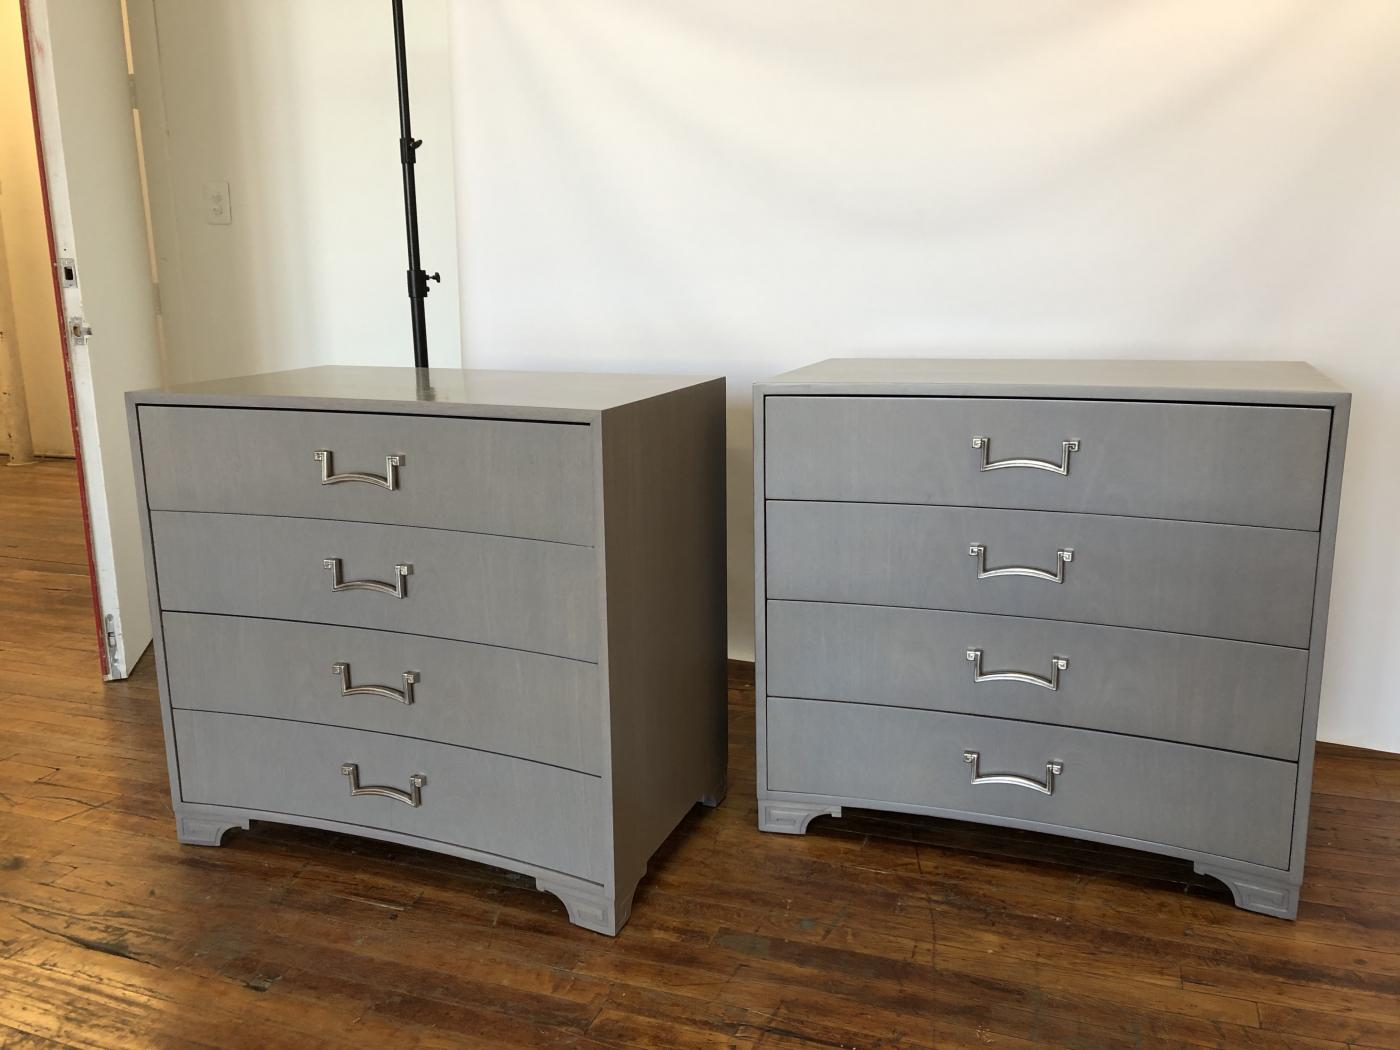 Pair of Modernist Dressers. Designed by Lorin Jackson for Grosfeld House.